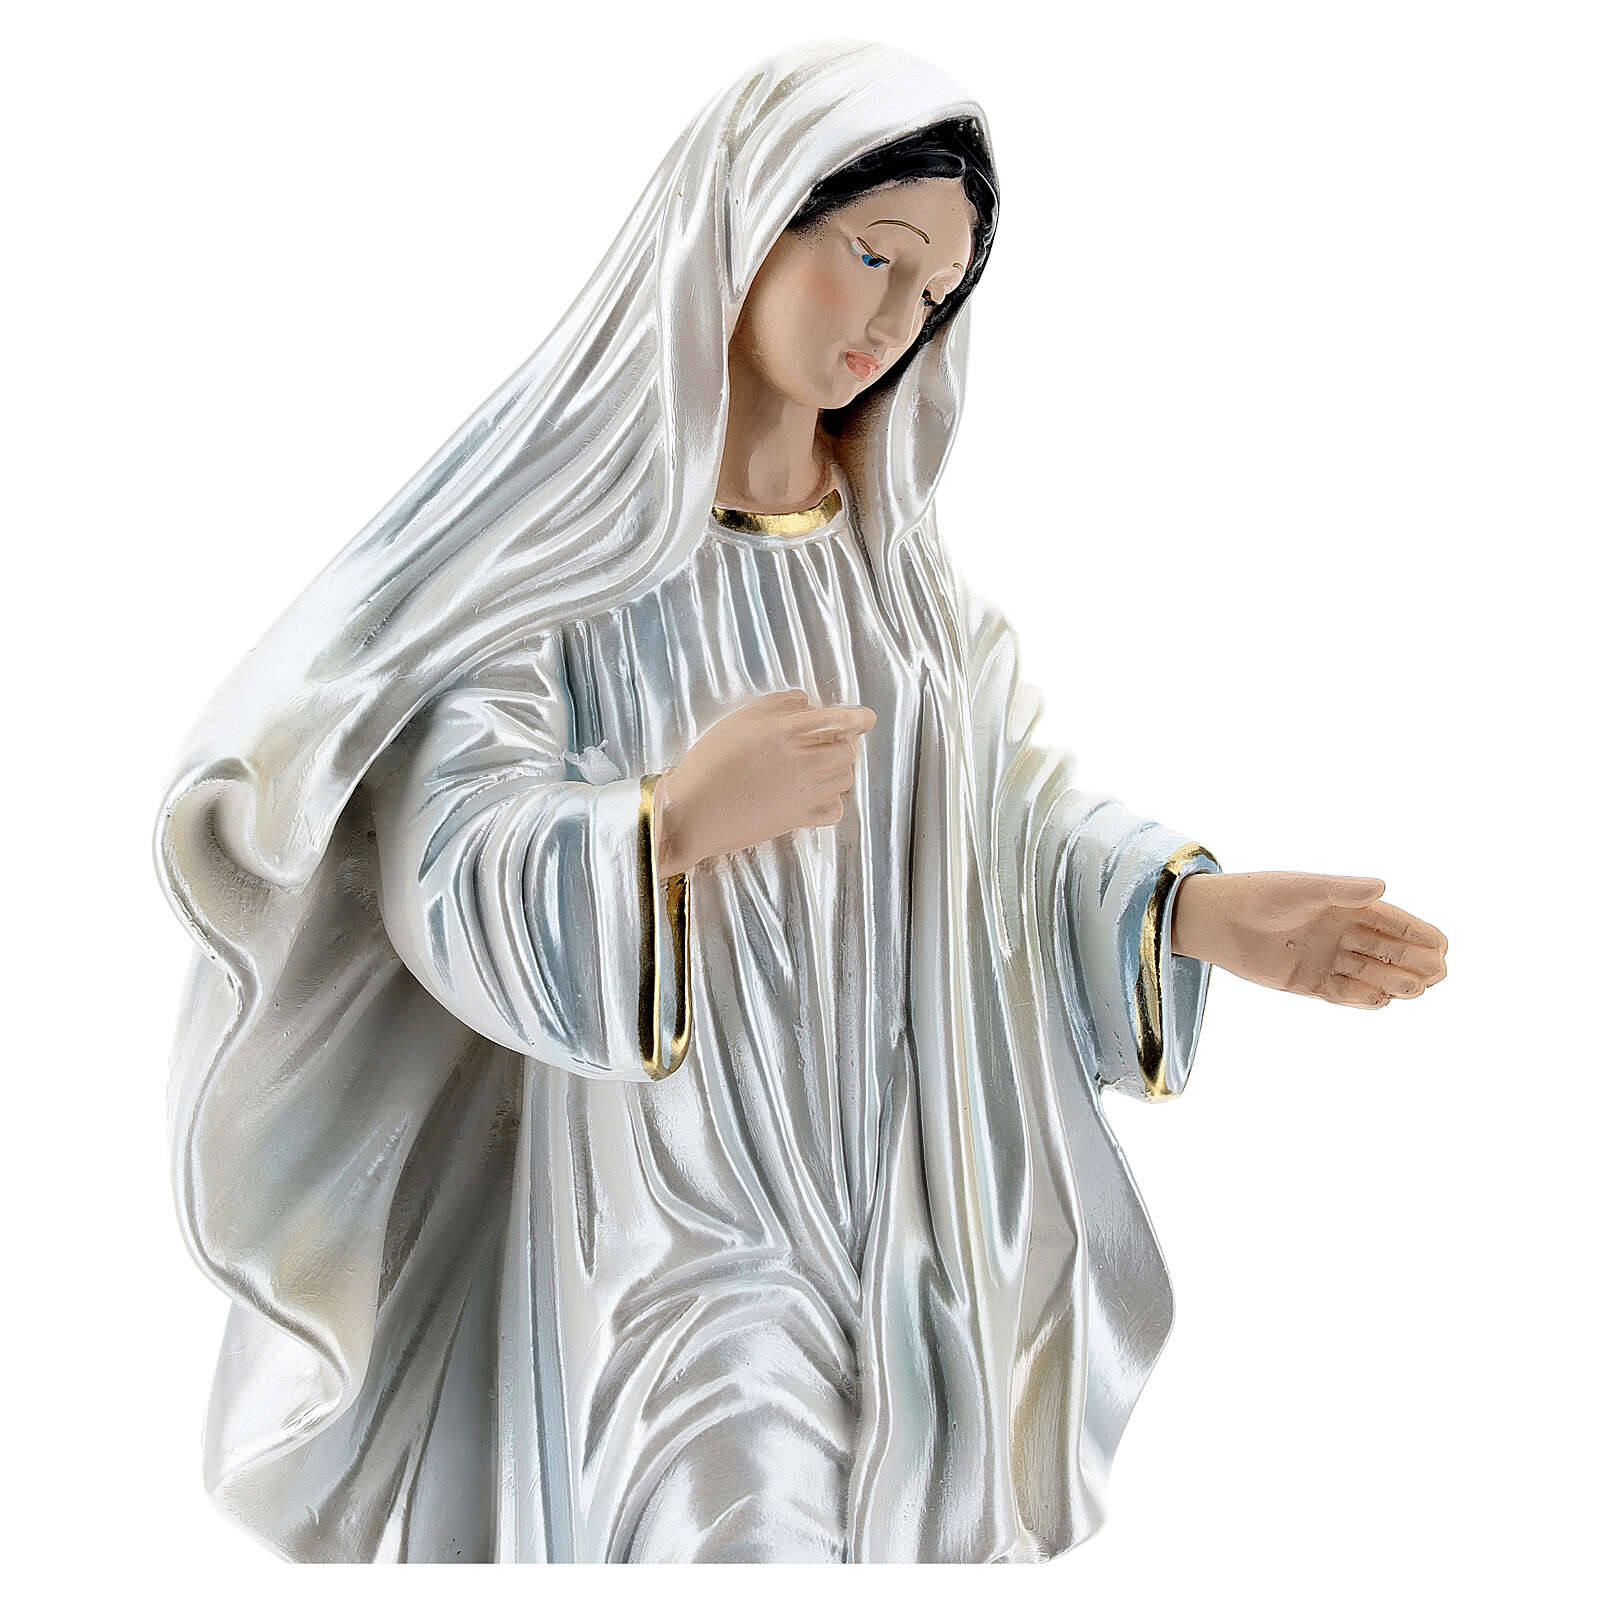 Statue of Our Lady of Medjugorje, 35 cm, in plaster with mother of pearl 4